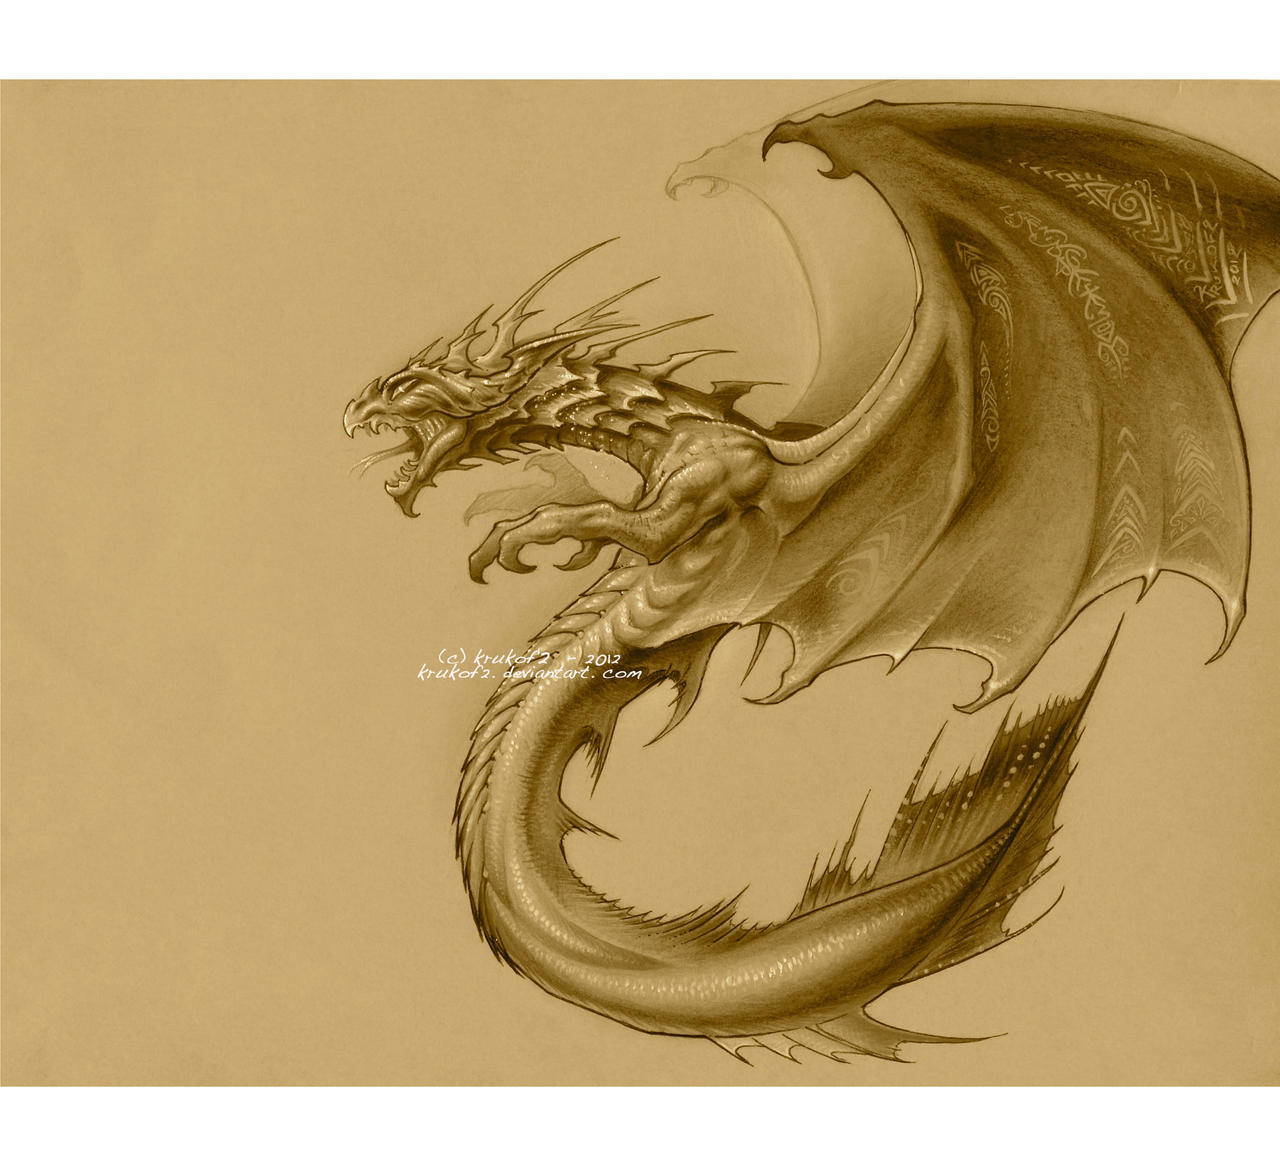 Dragon Demoniaque by krukof2